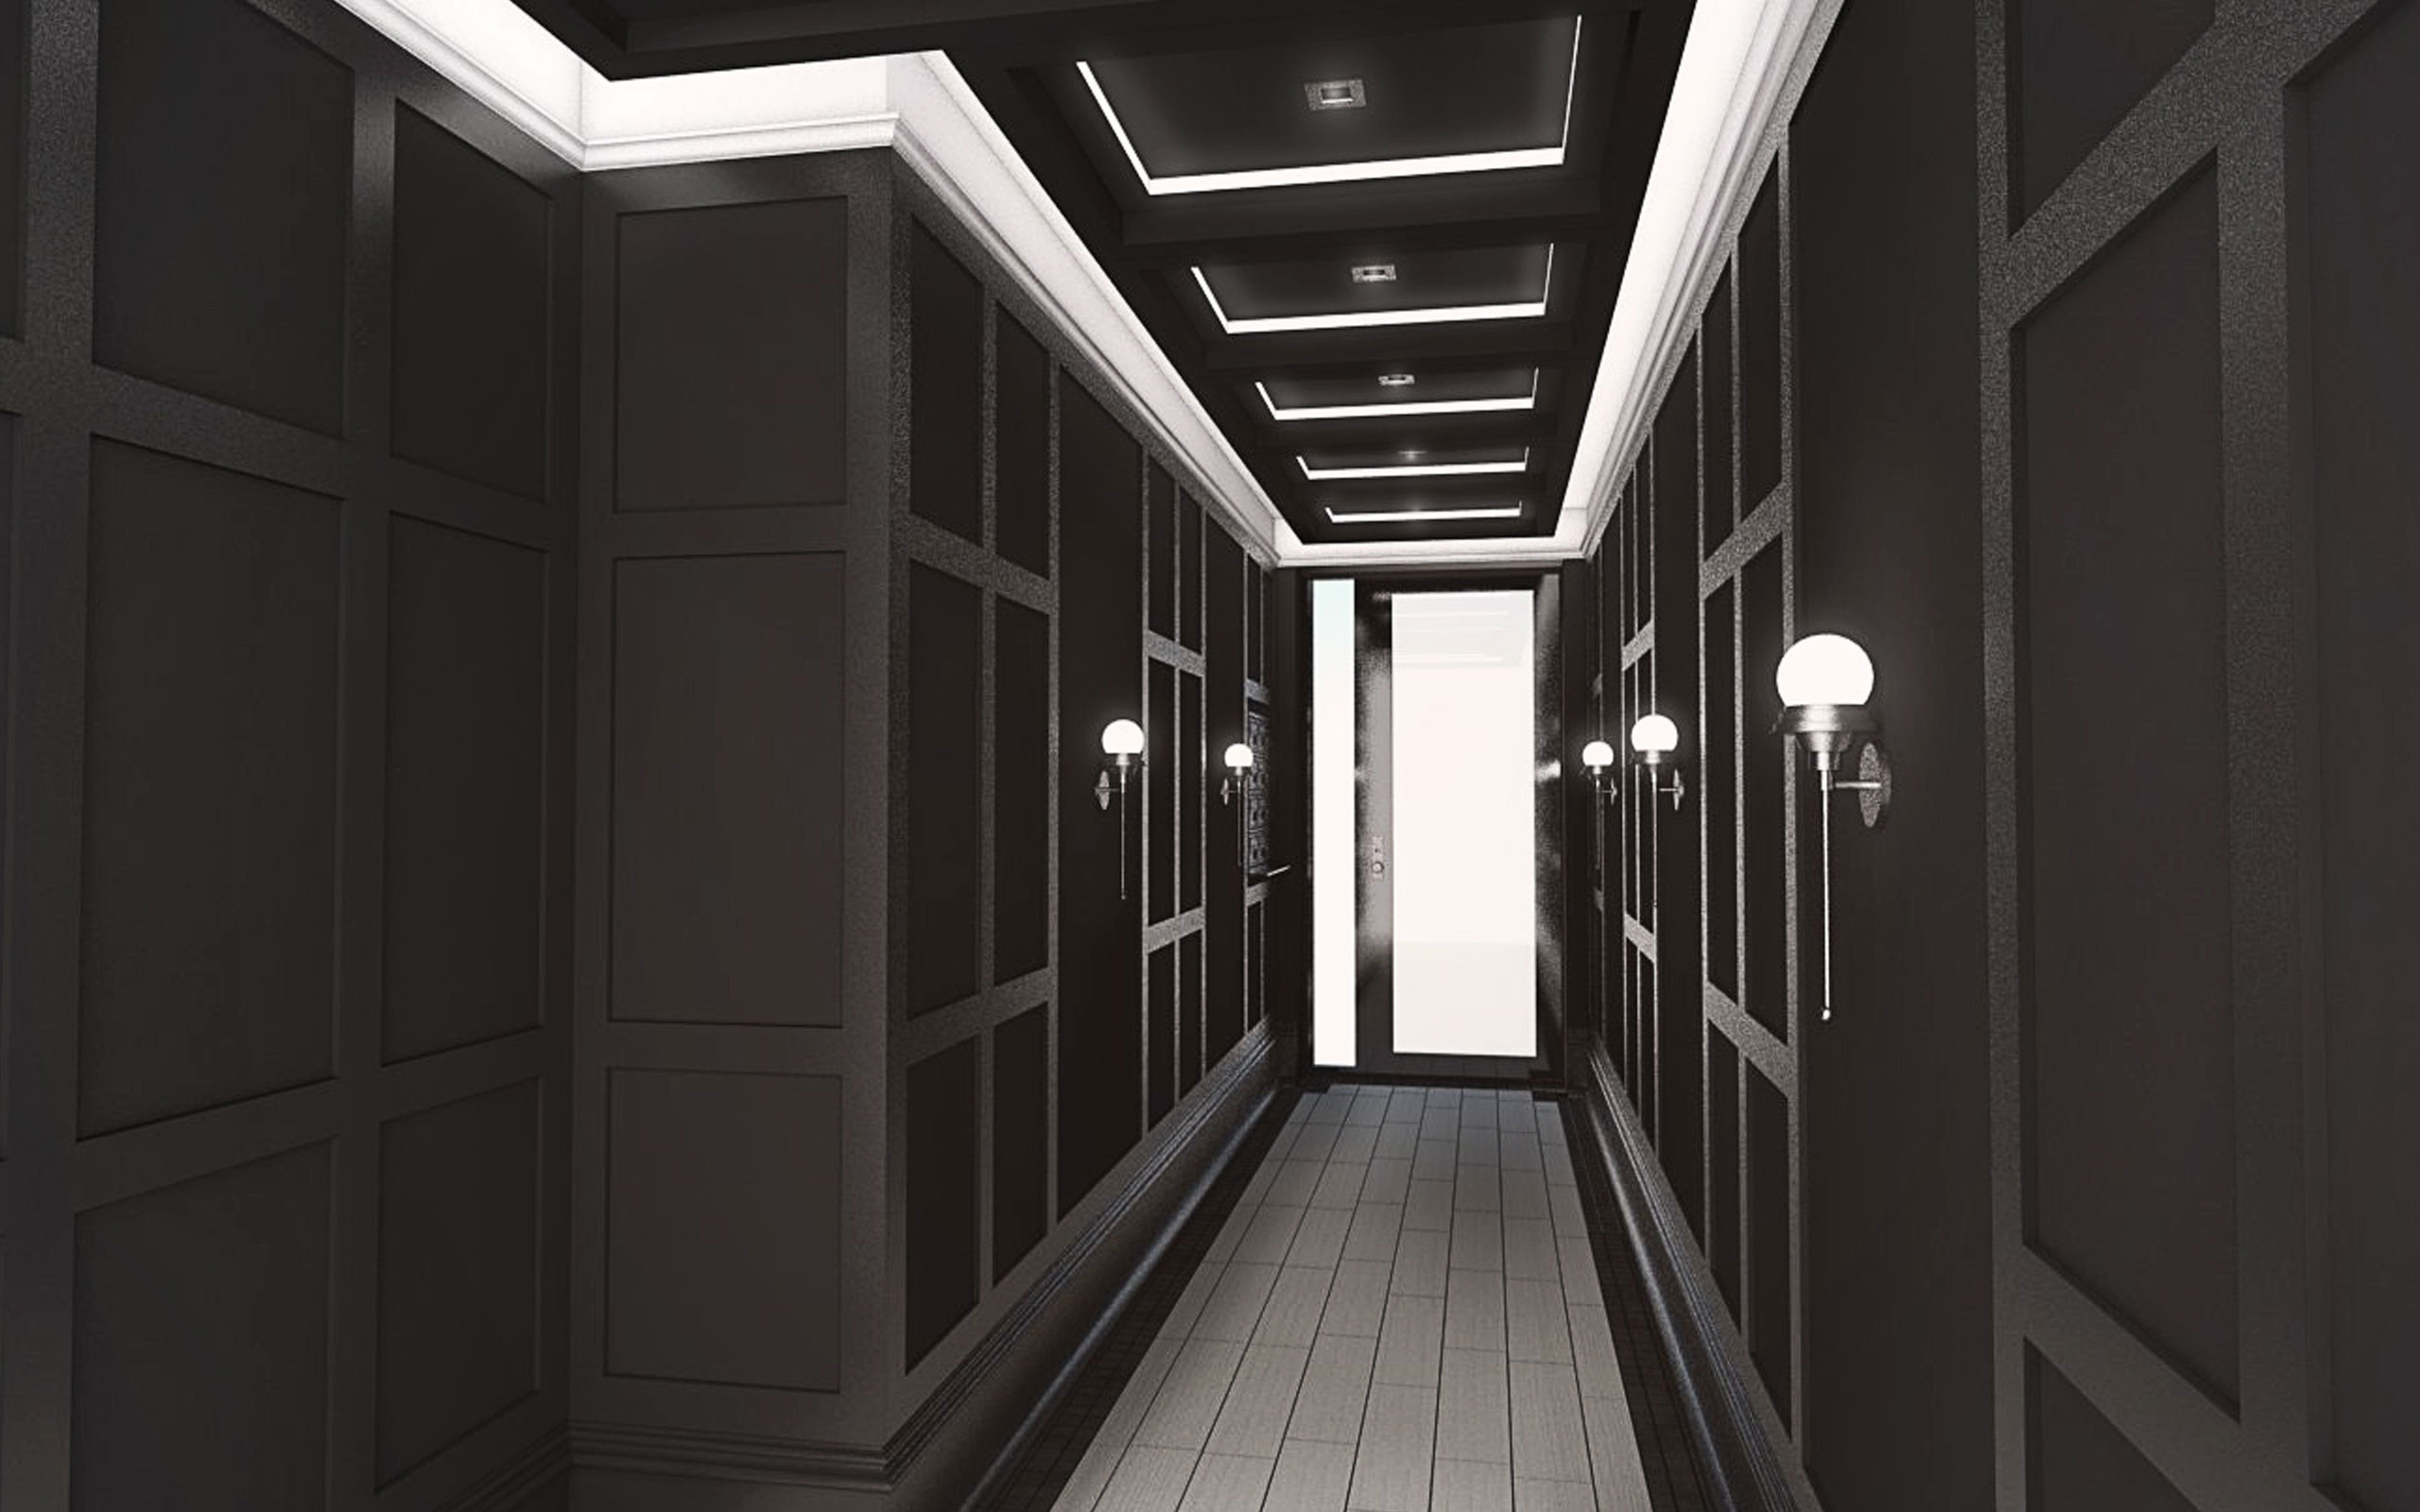 Hallway at 1728 Himrod Street, rendering by Input Creative Studio